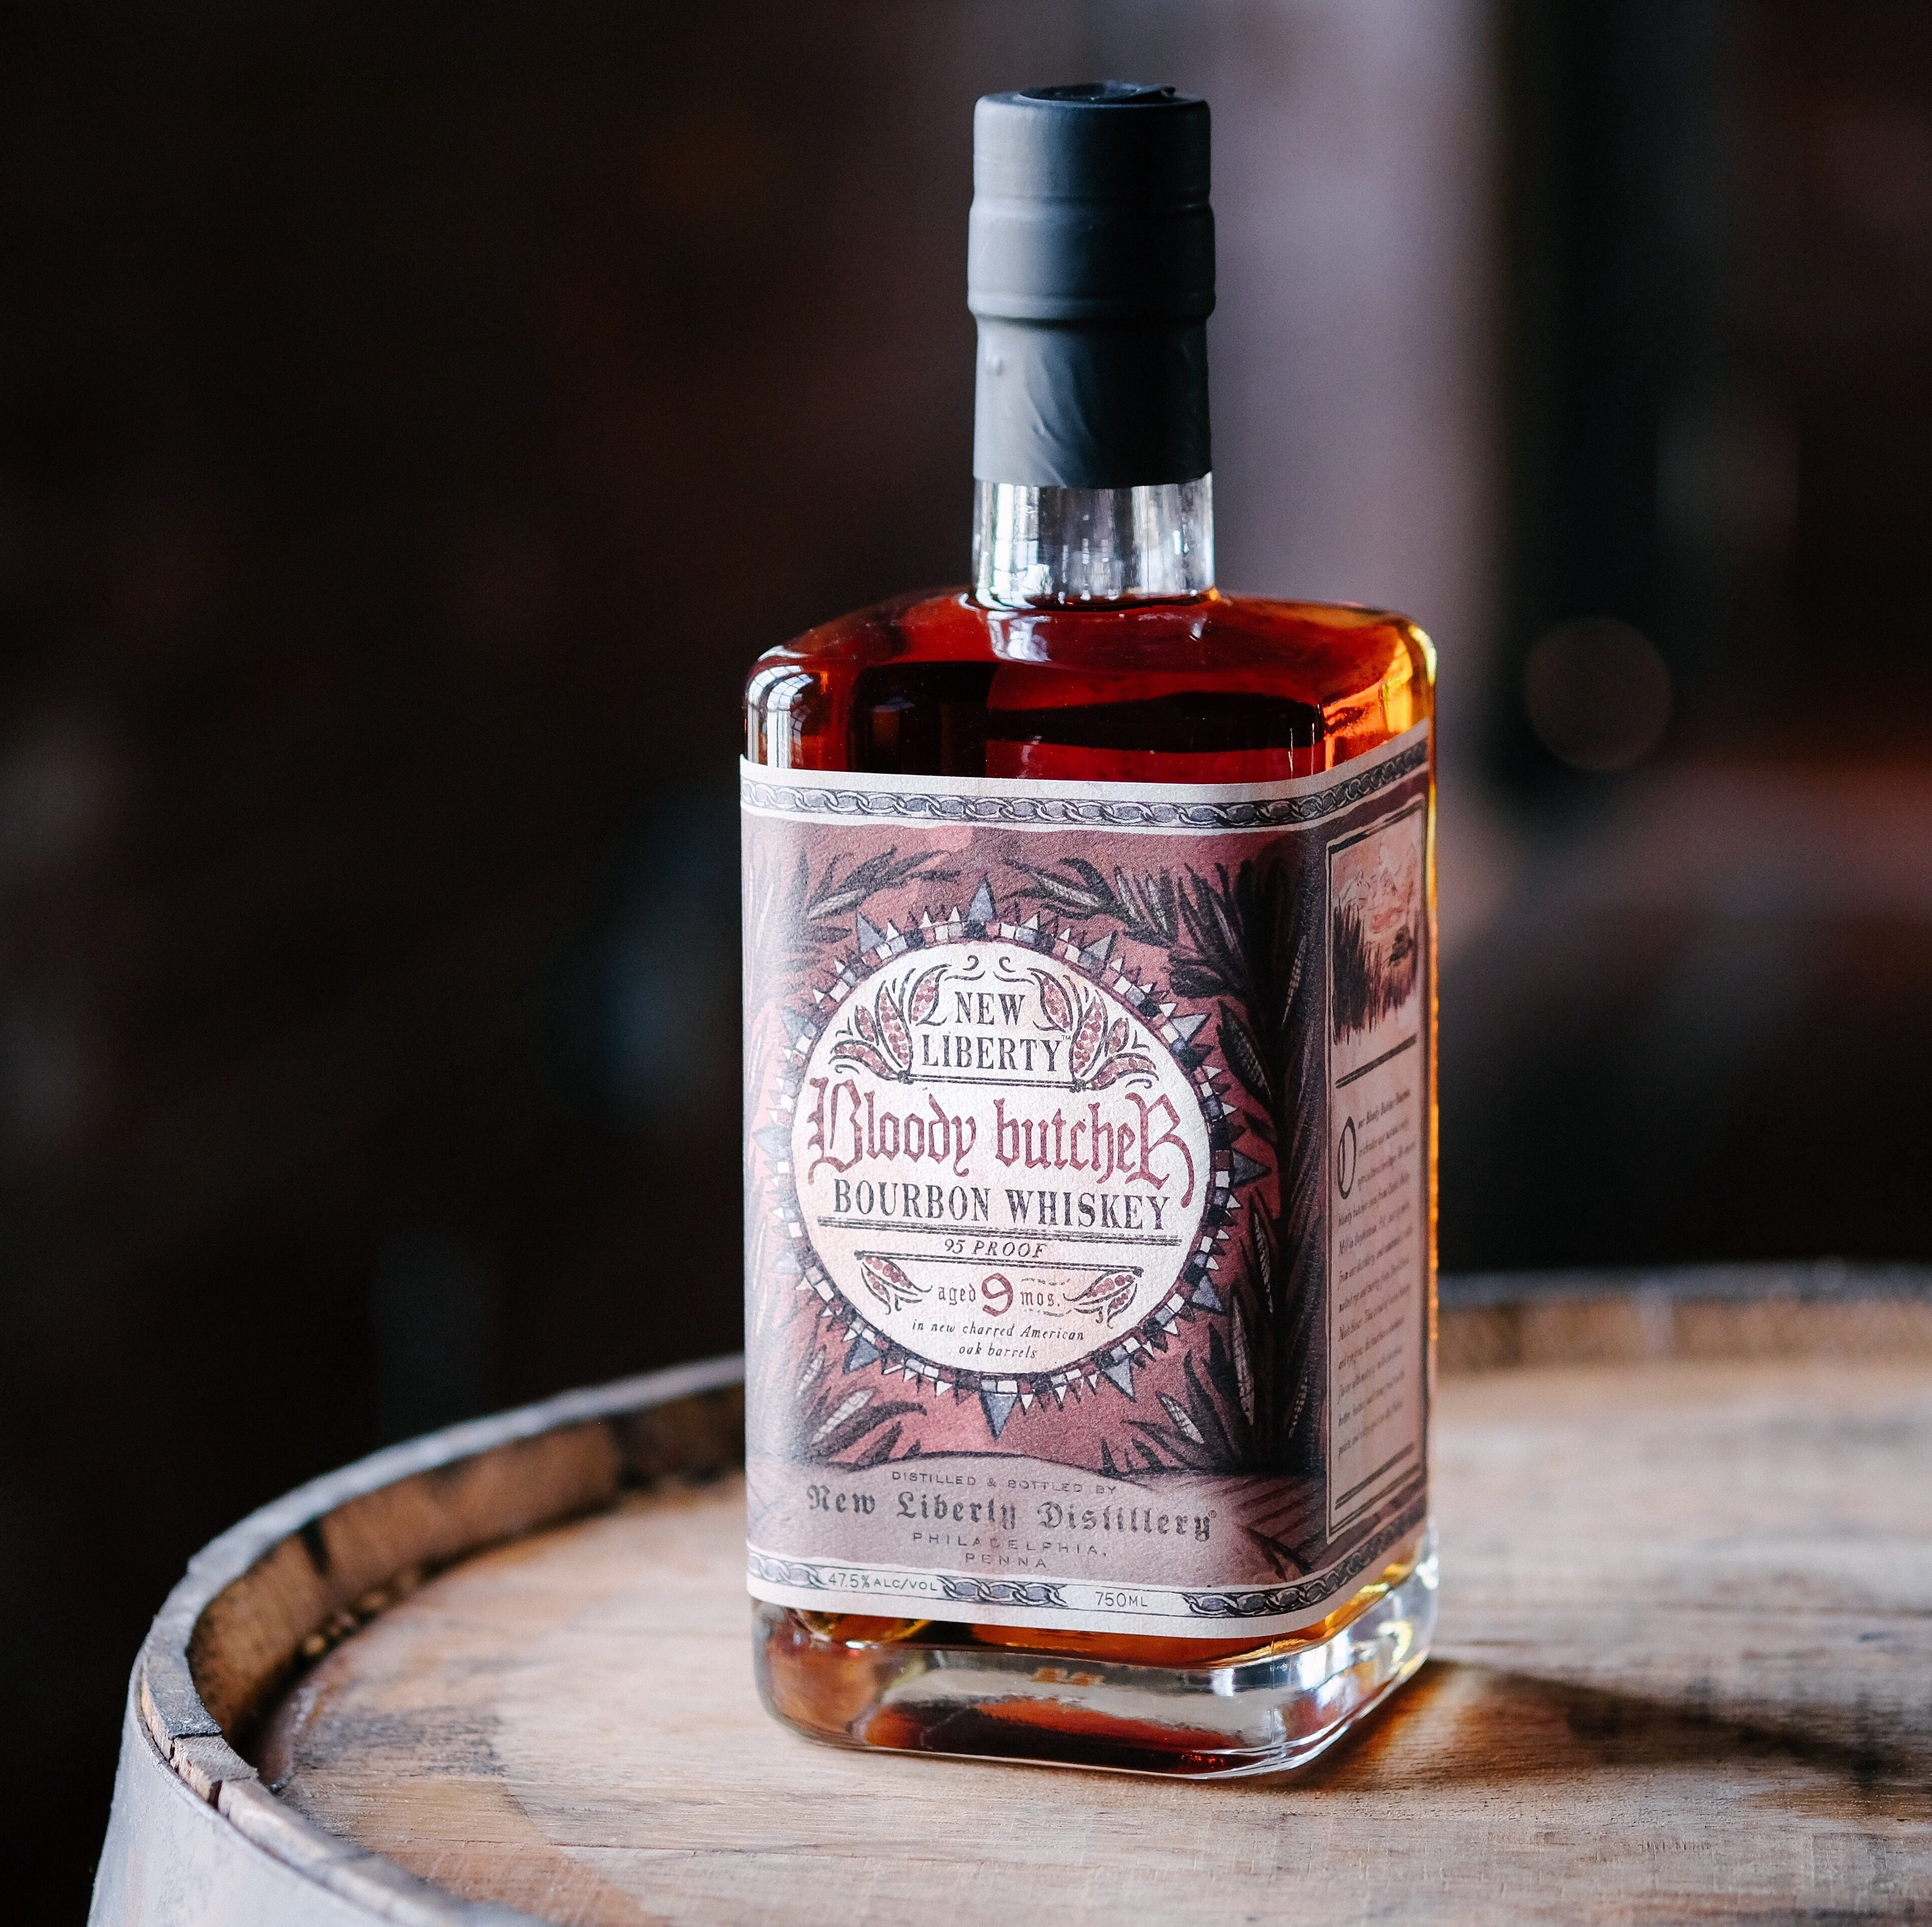 Bloody Butcher Bourbon from New Liberty Distillery.